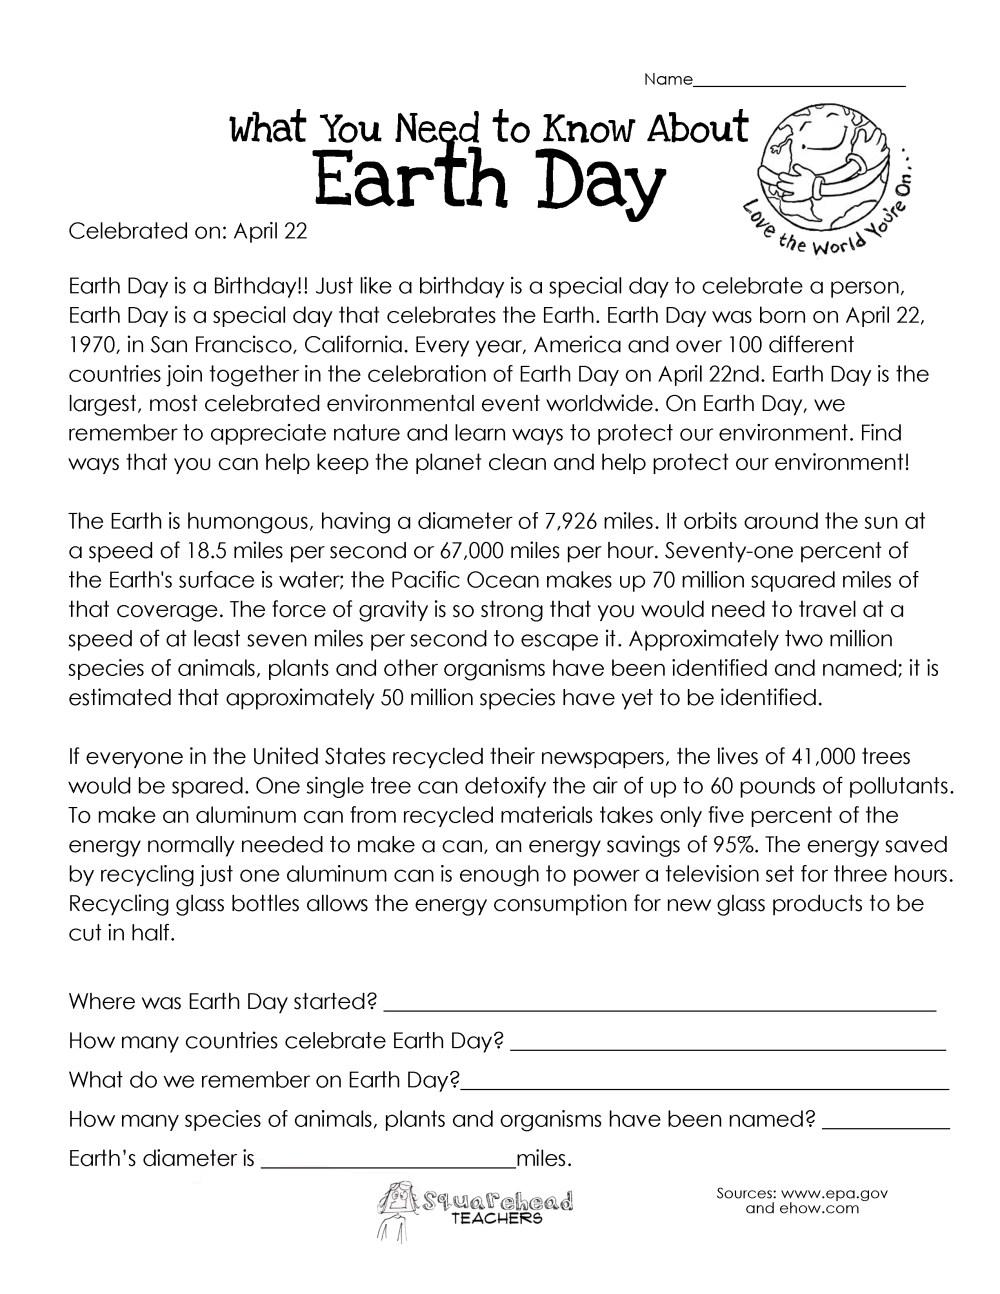 medium resolution of What You Need to Know About Earth Day   Squarehead Teachers